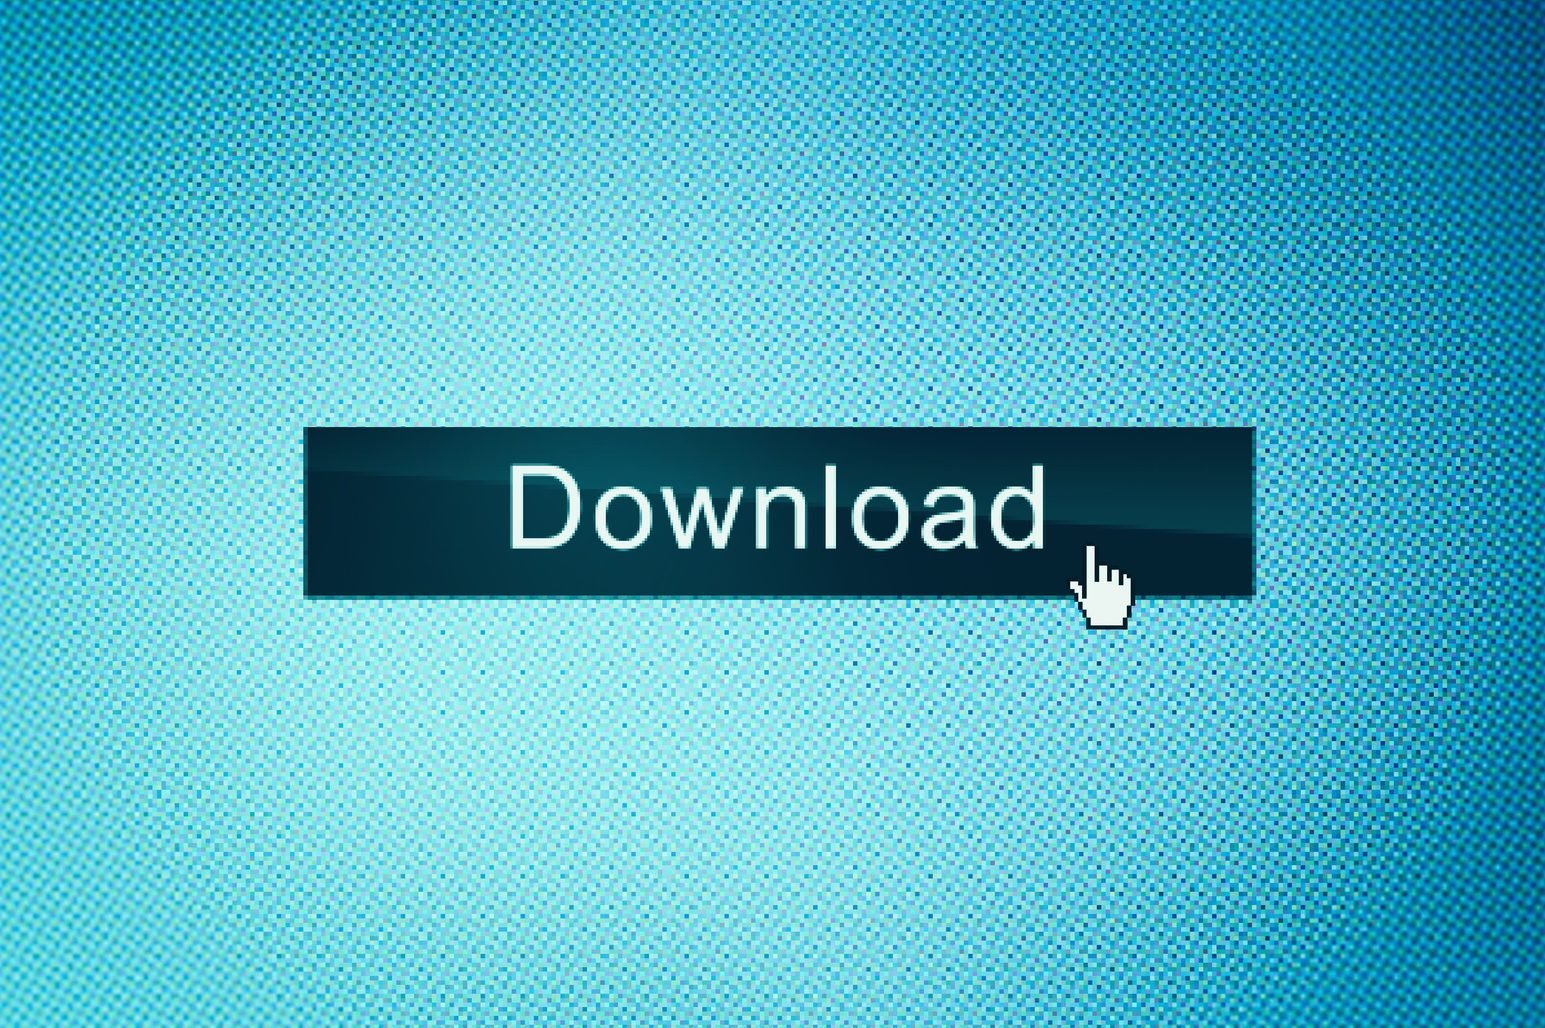 Web page download button